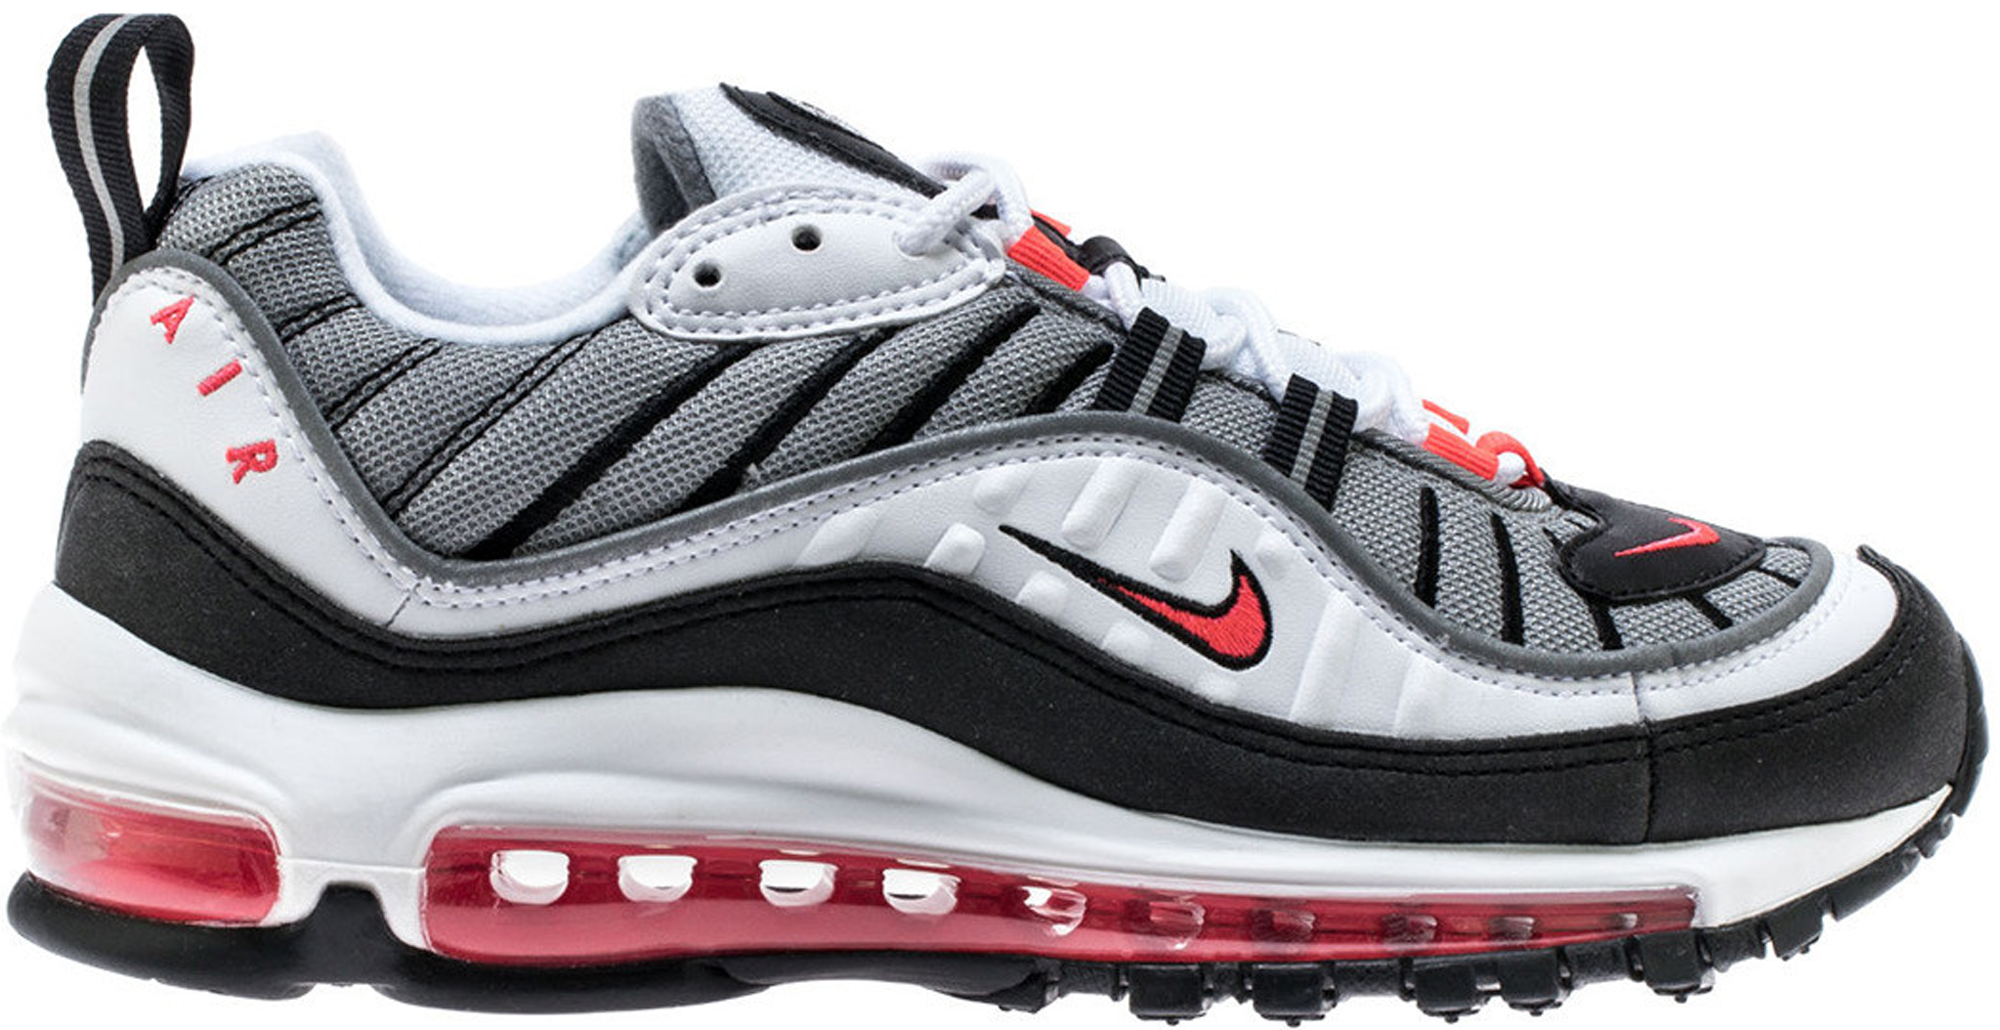 Nike Air Max 98 Black CD1537 001 Compra Online NOIRFONCE